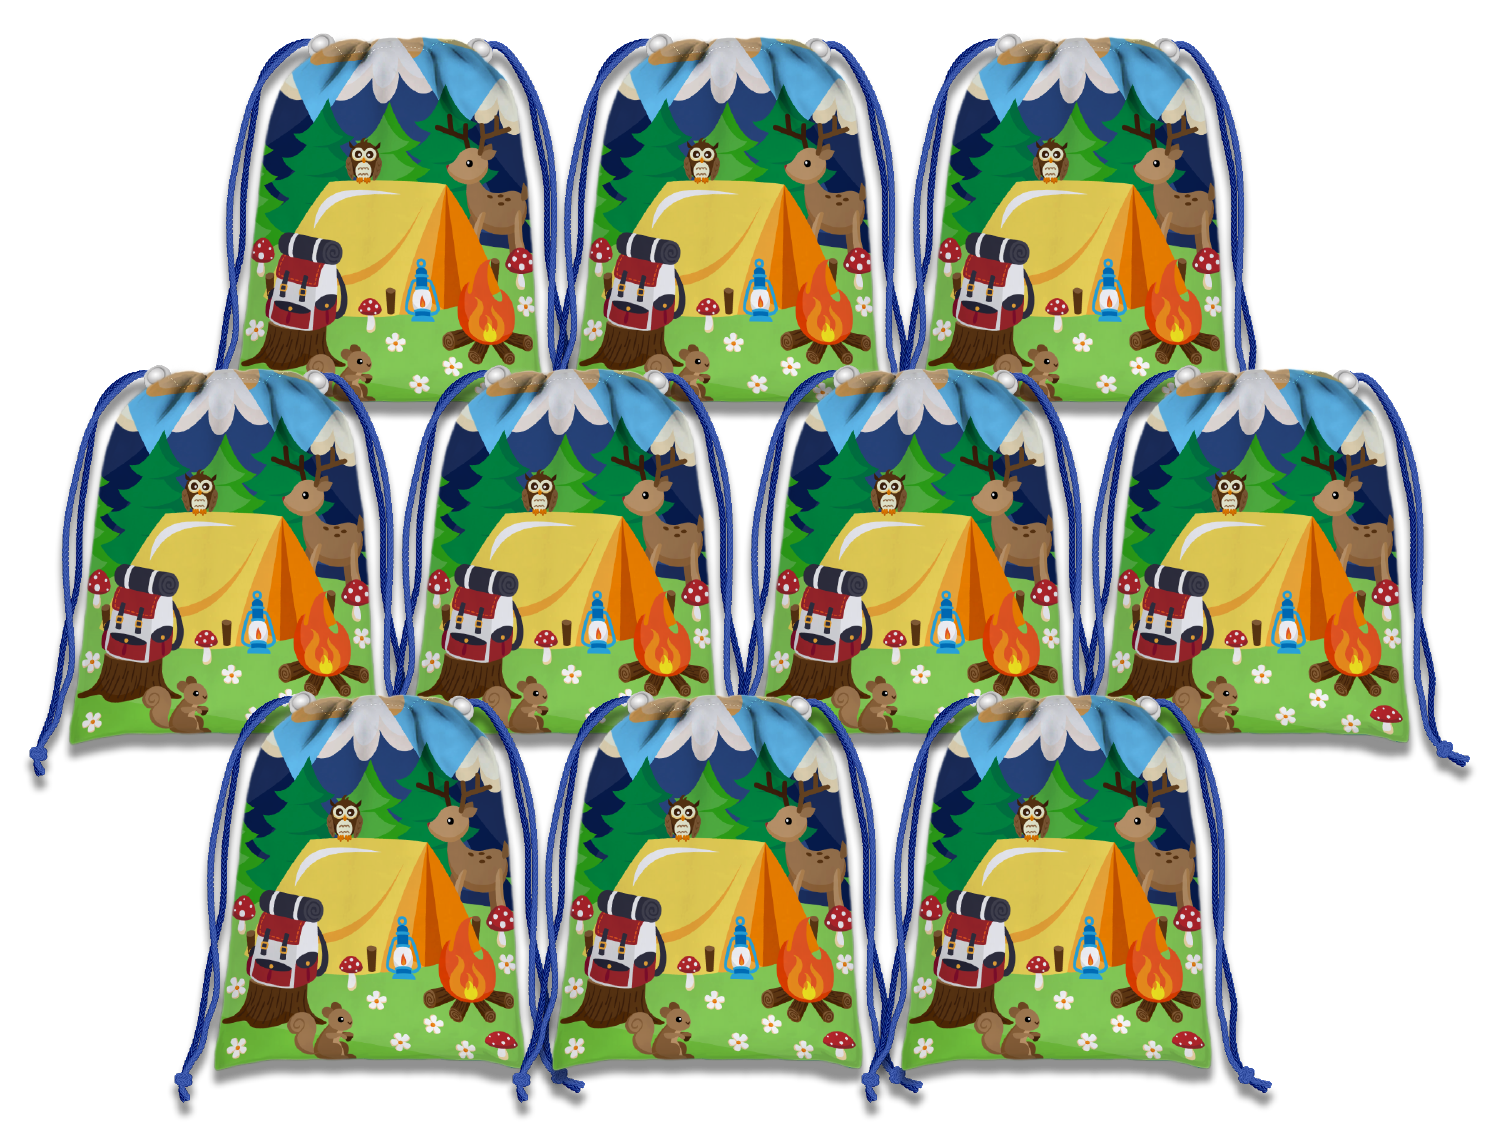 Camping Drawstring Tote Bag (10 Pack) - BirthdayGalore.com